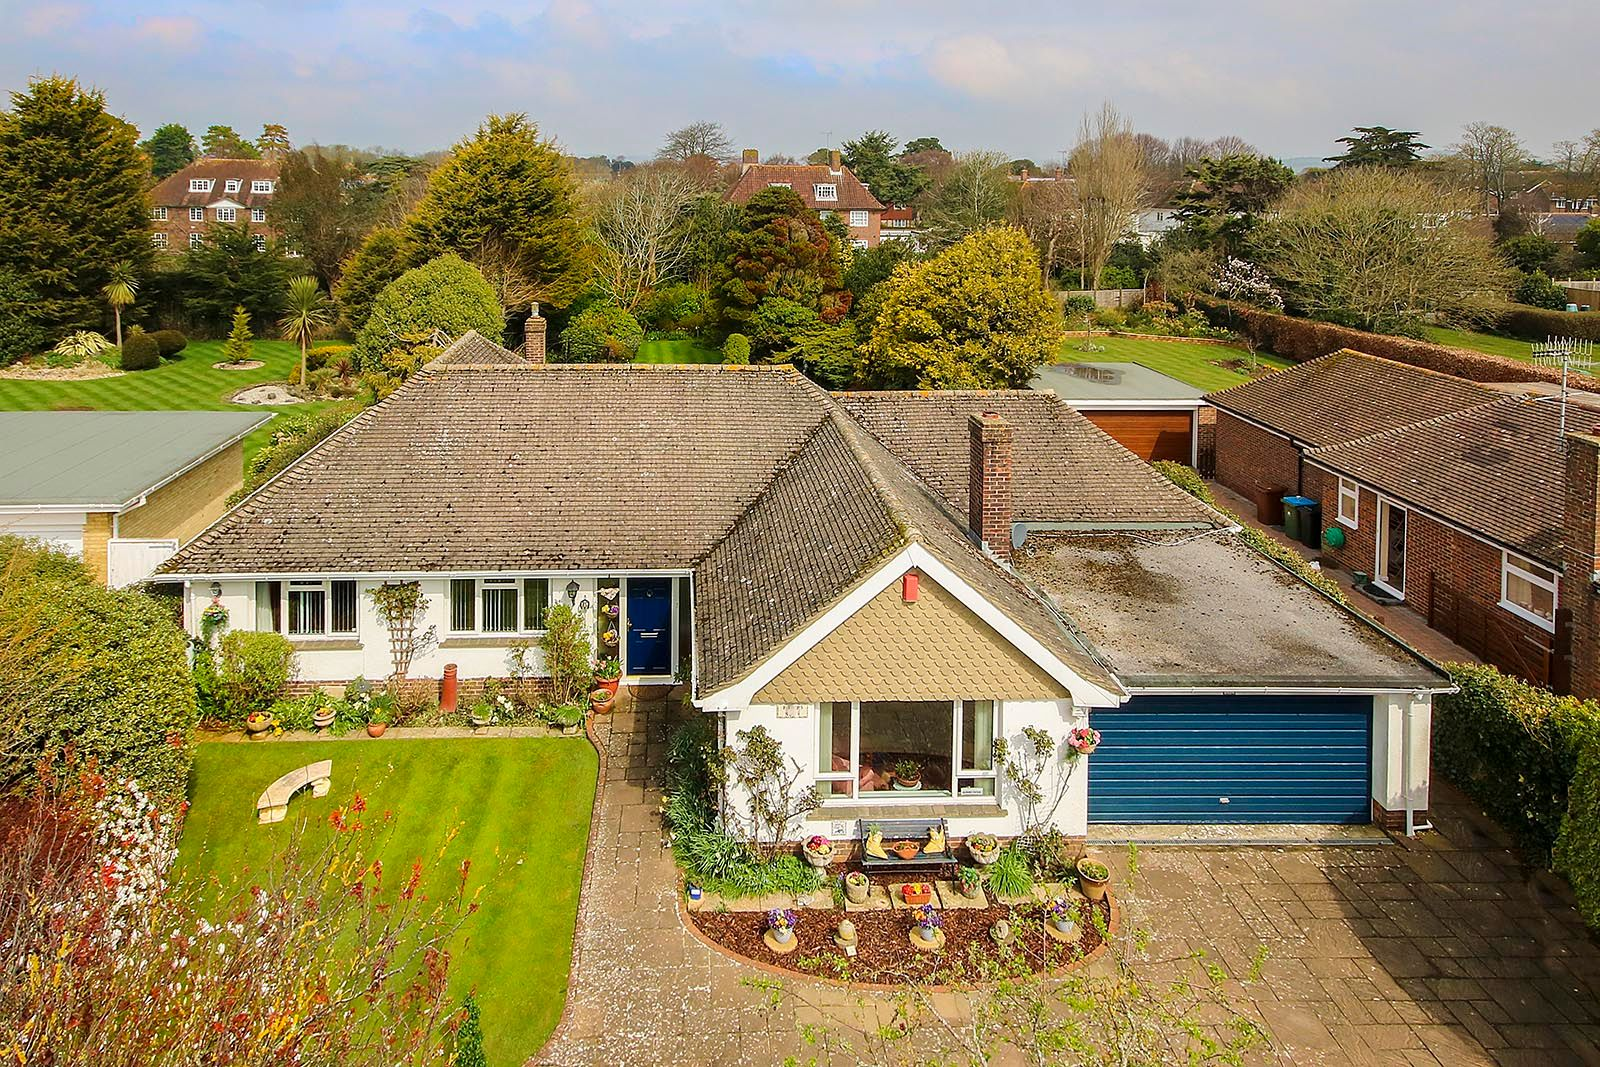 3 bed Bungalow for sale in East Preston - Elevated front (Property Image 0)